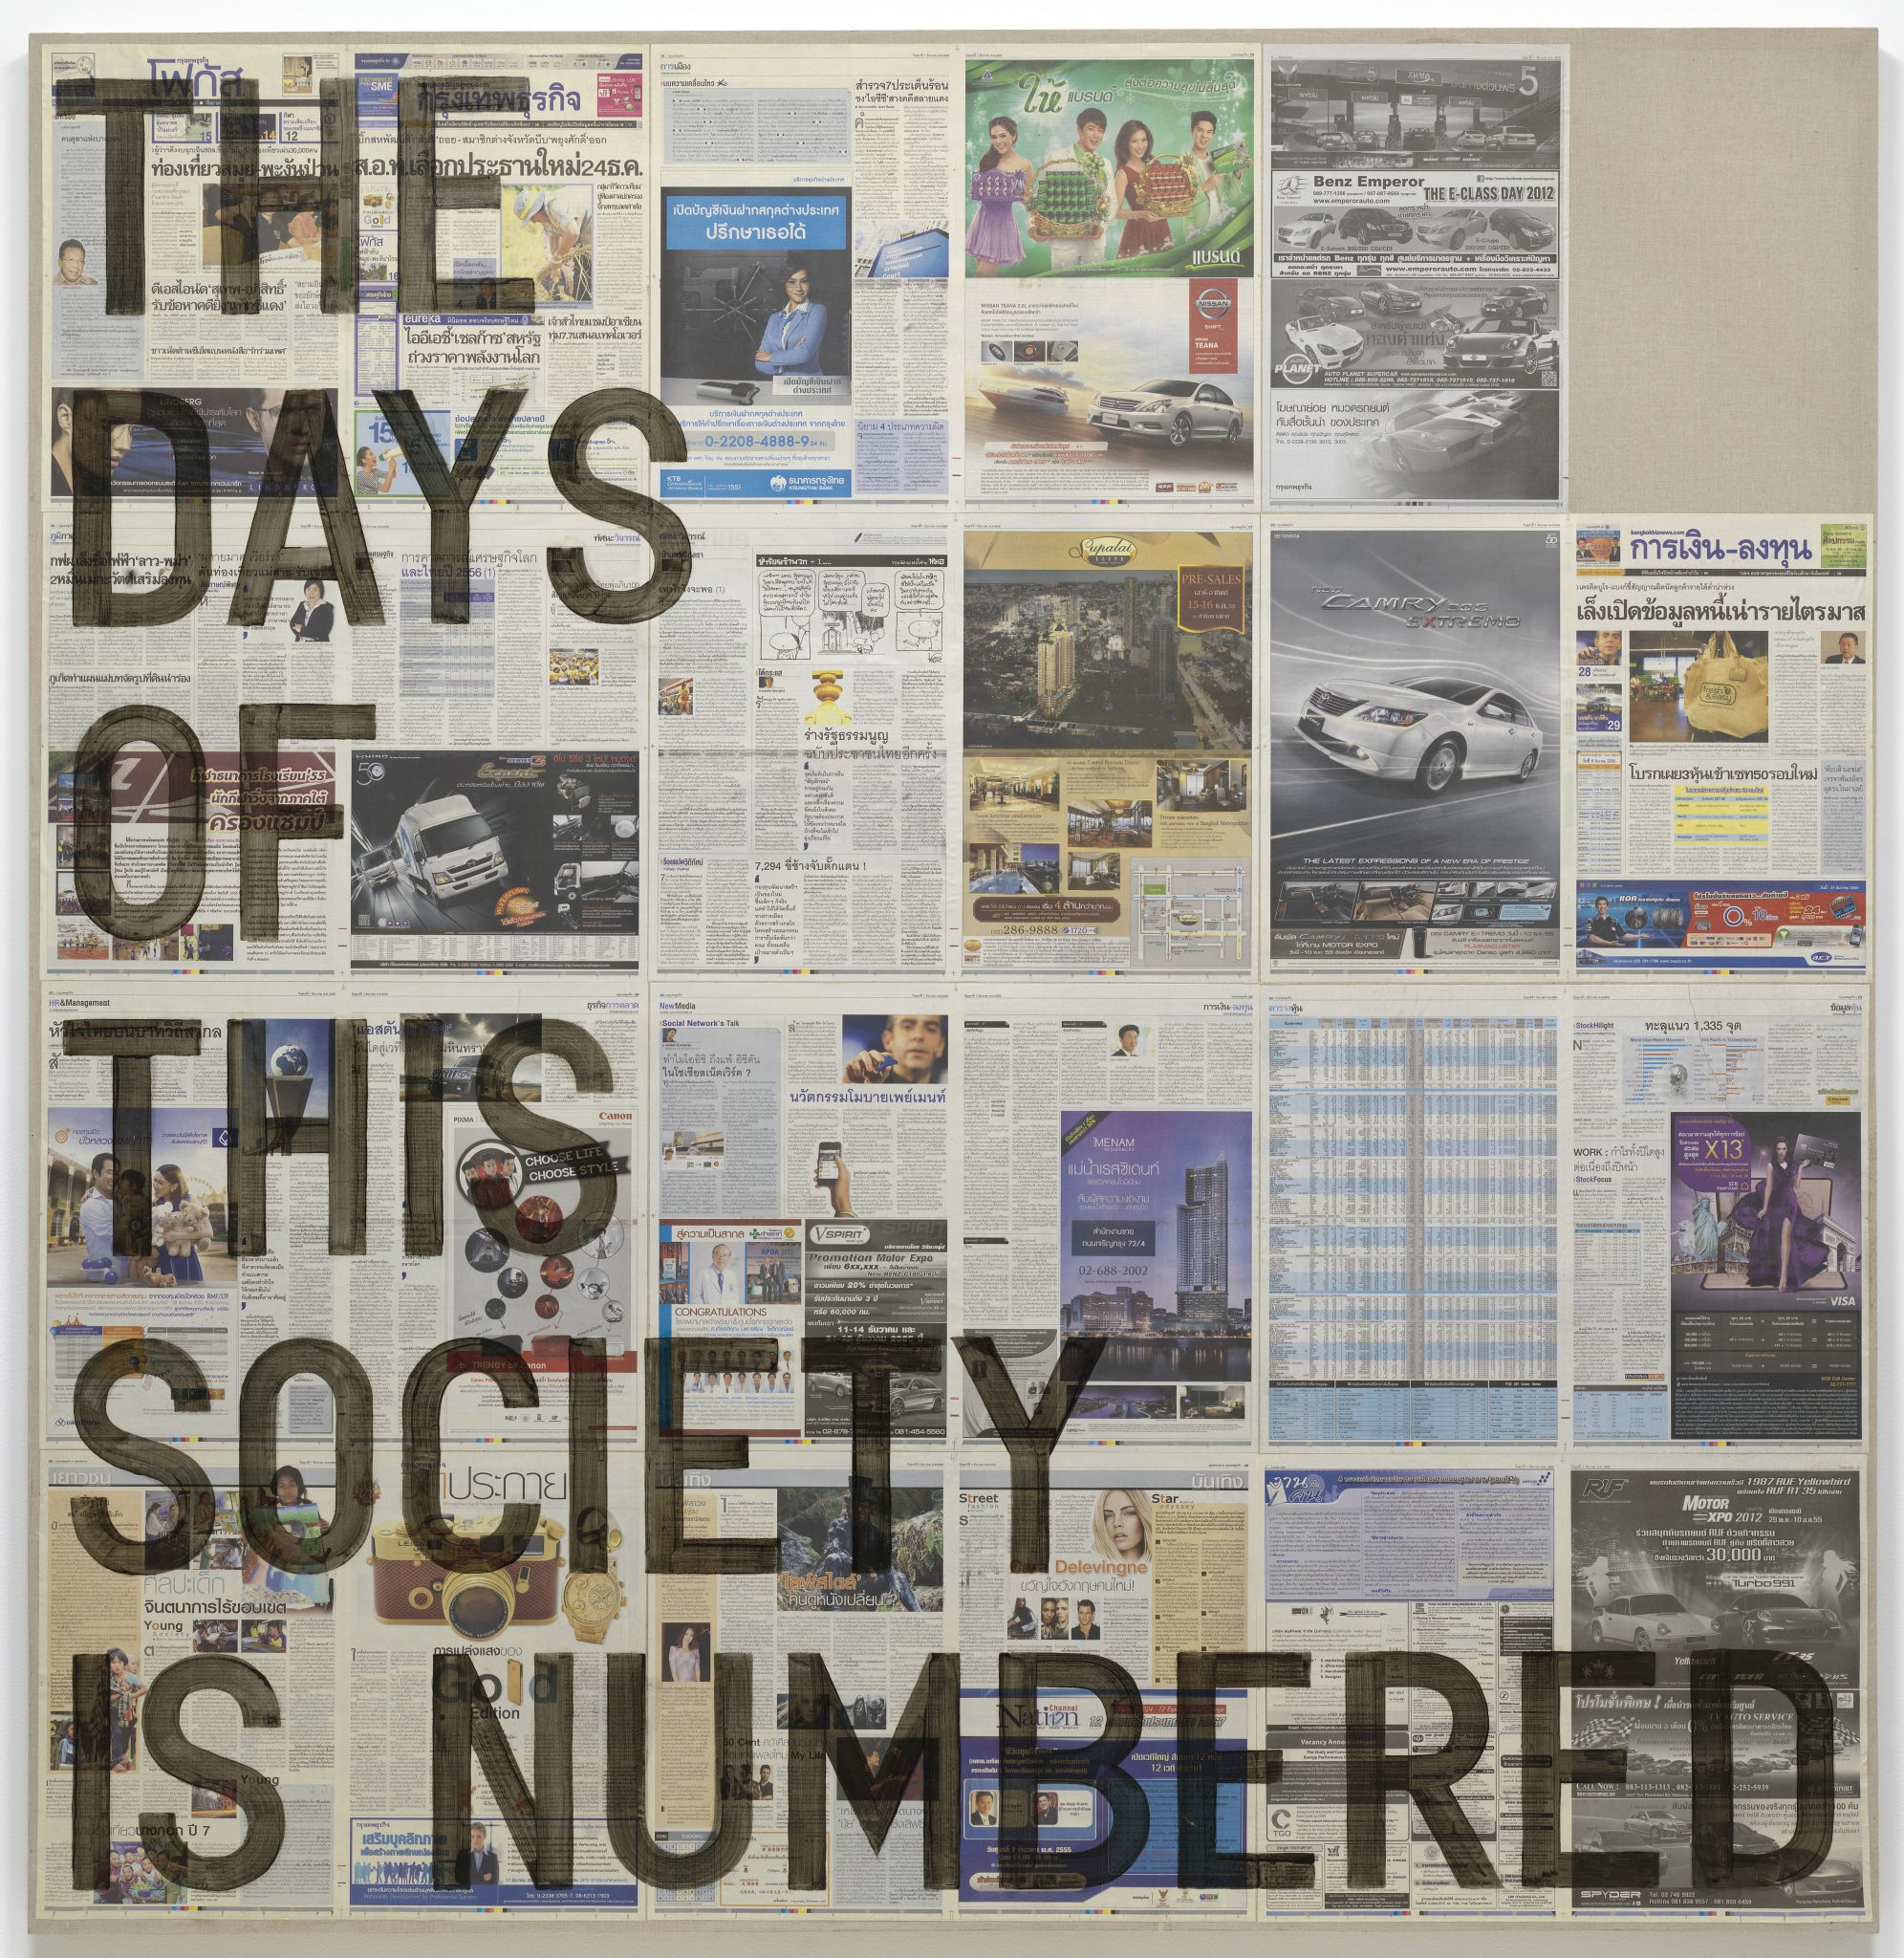 Rirkrit Tiravanija (Thai, born Argentina 1961) untitled (the days of this society is numbered / December 7, 2012) 2014 Synthetic polymer paint and newspaper on linen The Museum of Modern Art, New York Committee on Drawings and Prints Fund, 2014. © 2017 Rirkrit Tiravanija FAD magazine